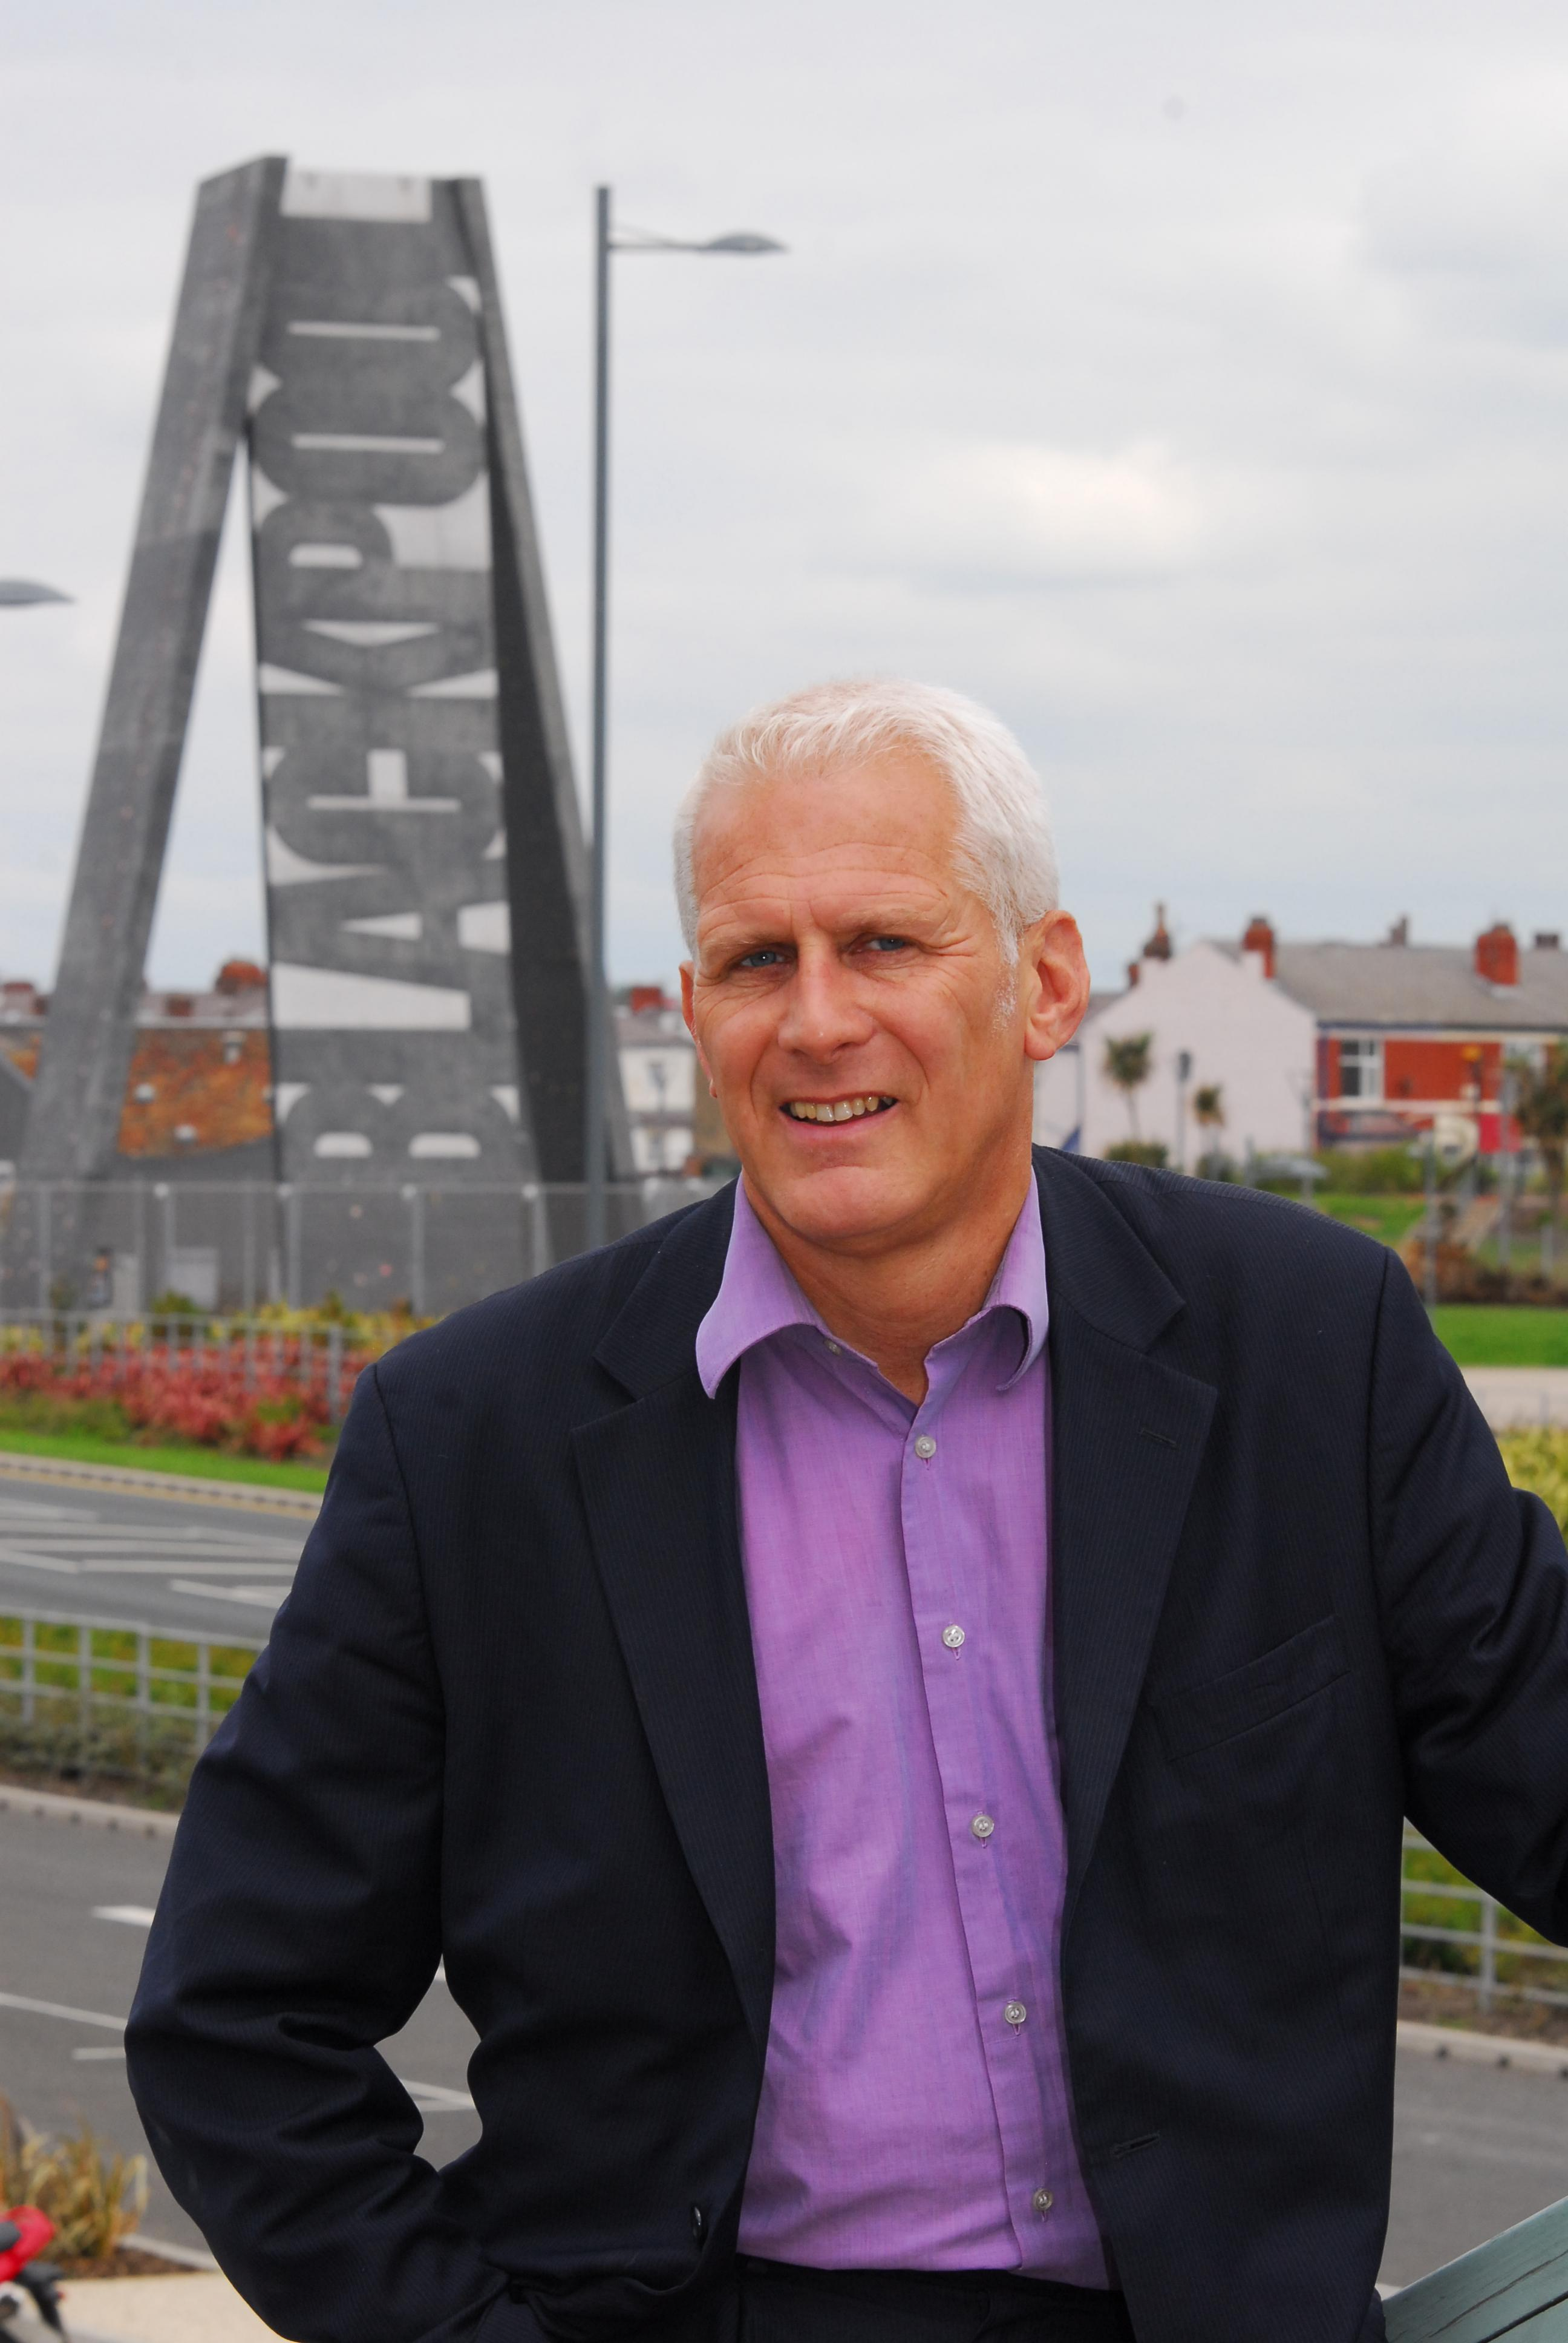 Following recent vandalism directed towards taxis and other vehicles in South Shore, Gordon has praised the Police and Blackpool Council for their swift response to the problem.        Taxi drivers had complained to the Police after being targeted by vandals with items such as stones and eggs on...